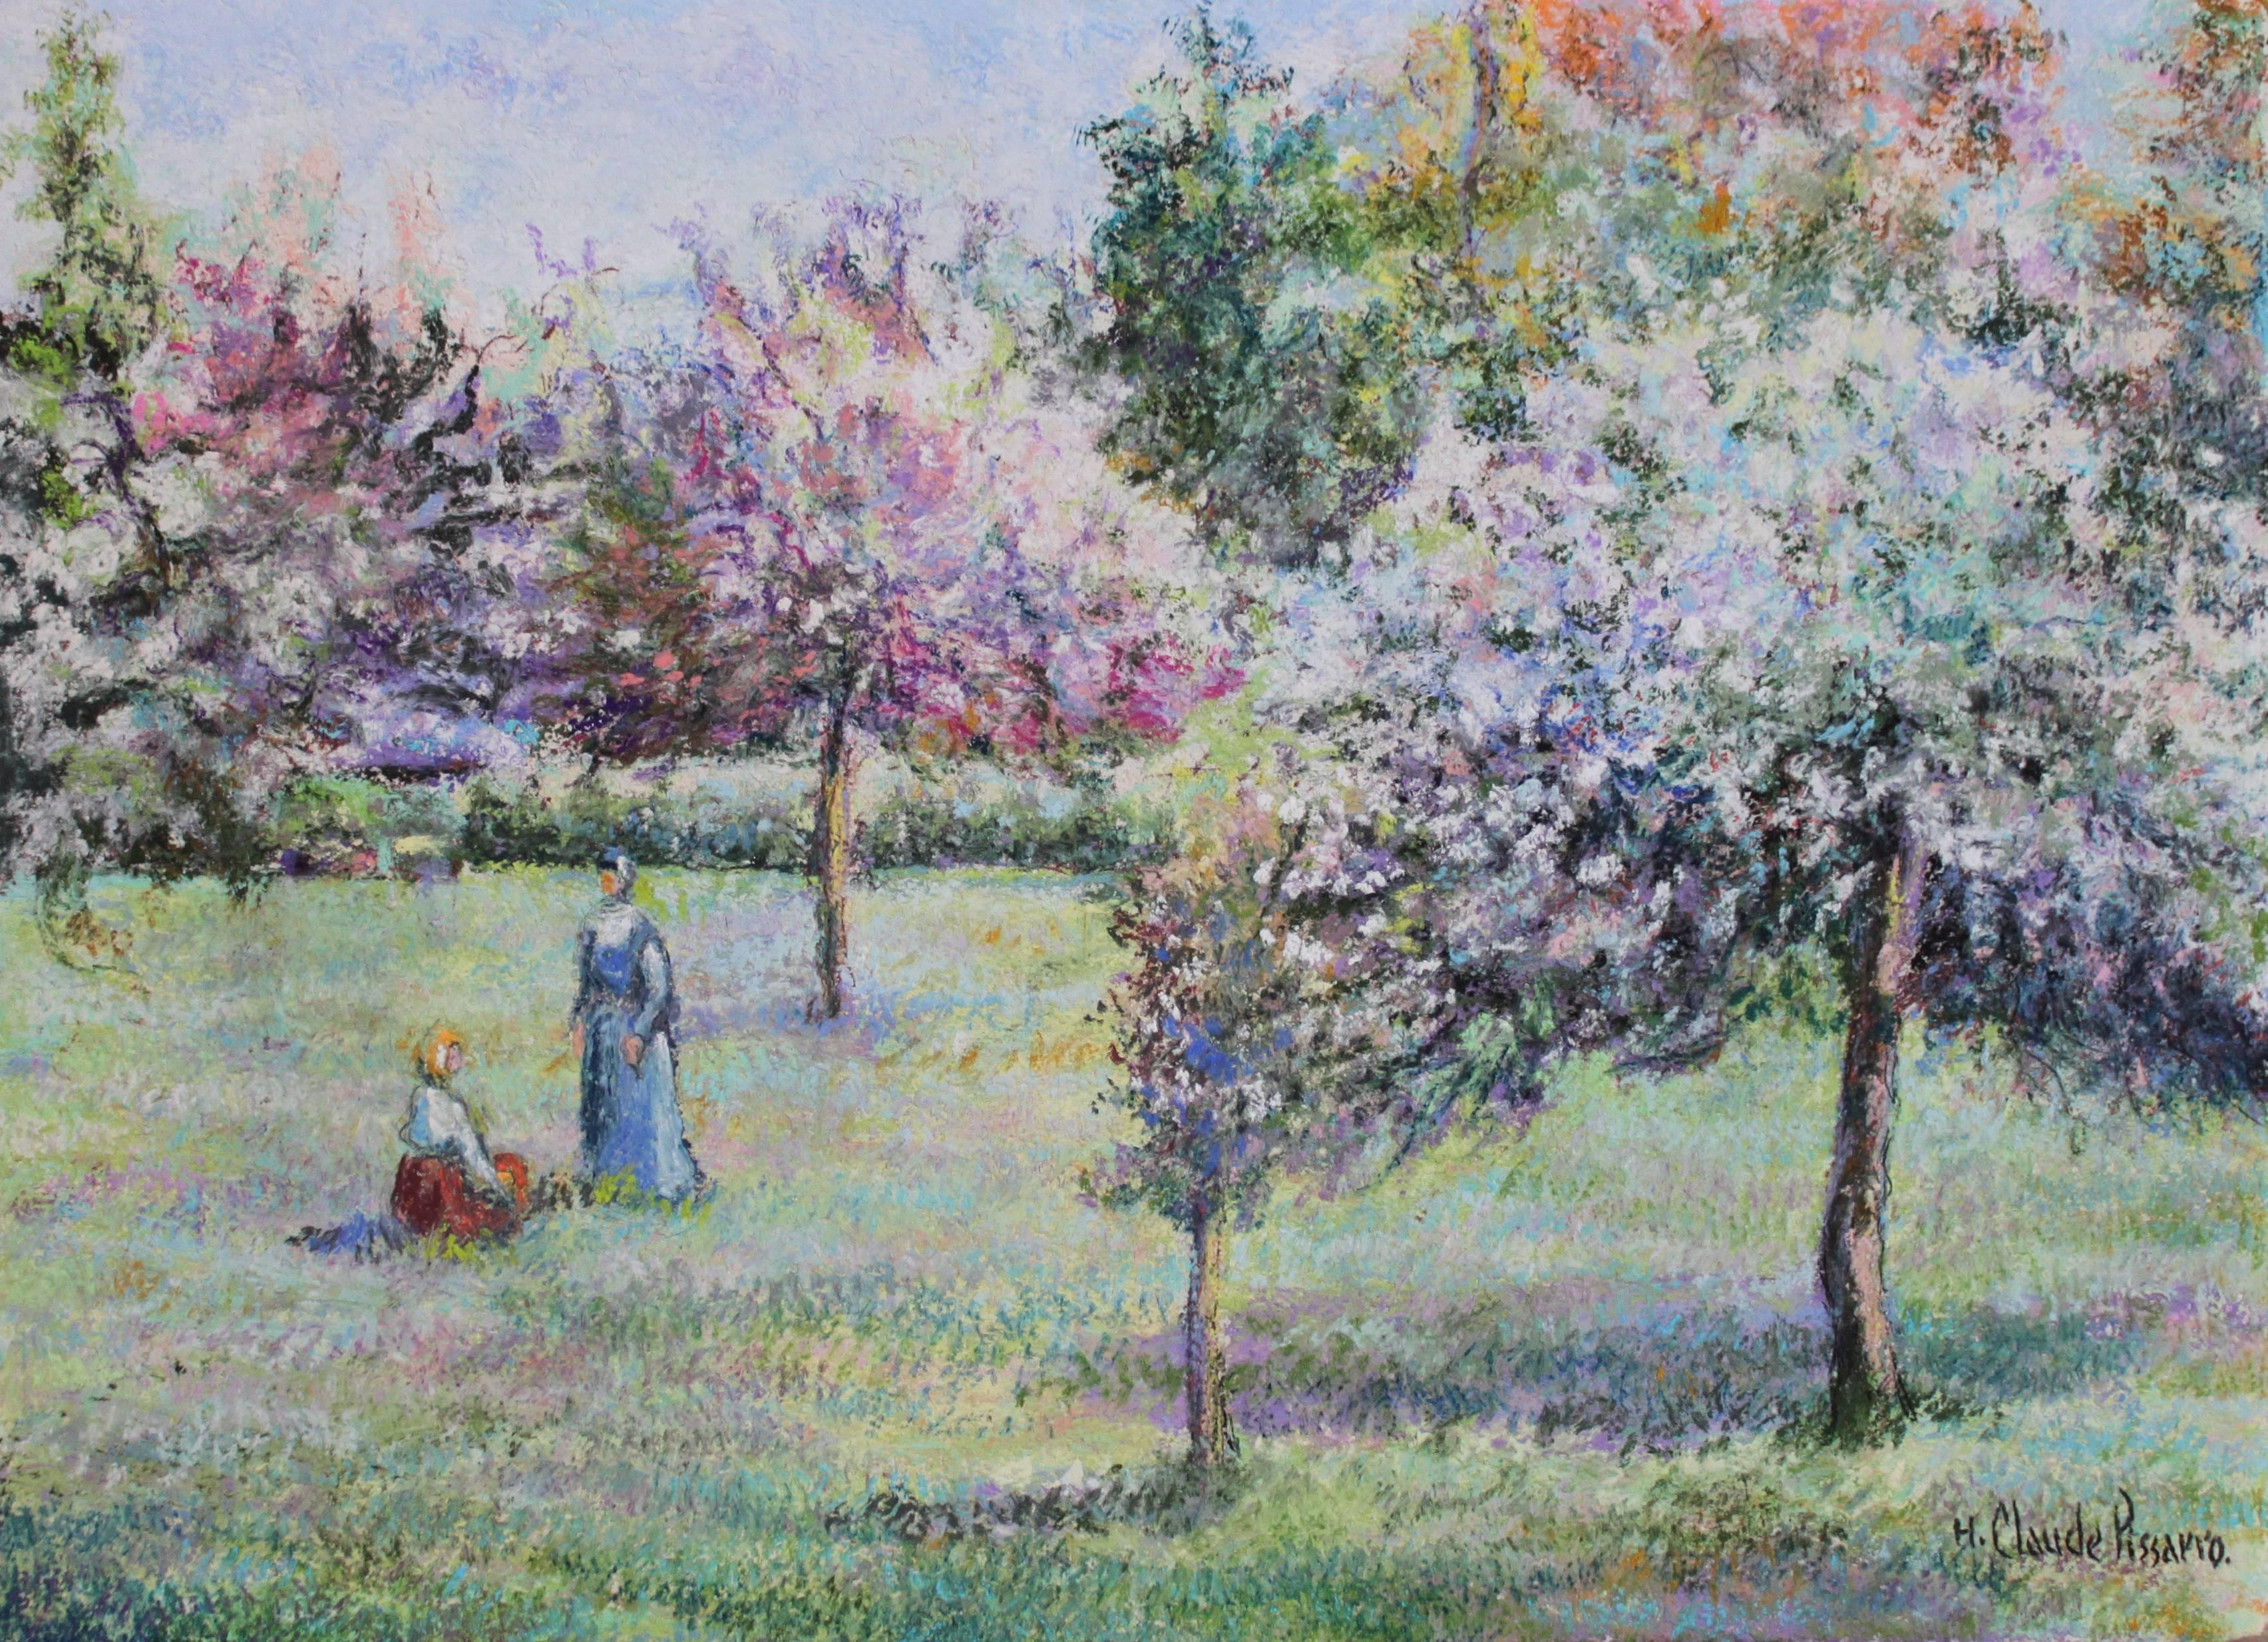 Le Verger by H. Claude Pissarro - Post-Impressionist style pastel on paper